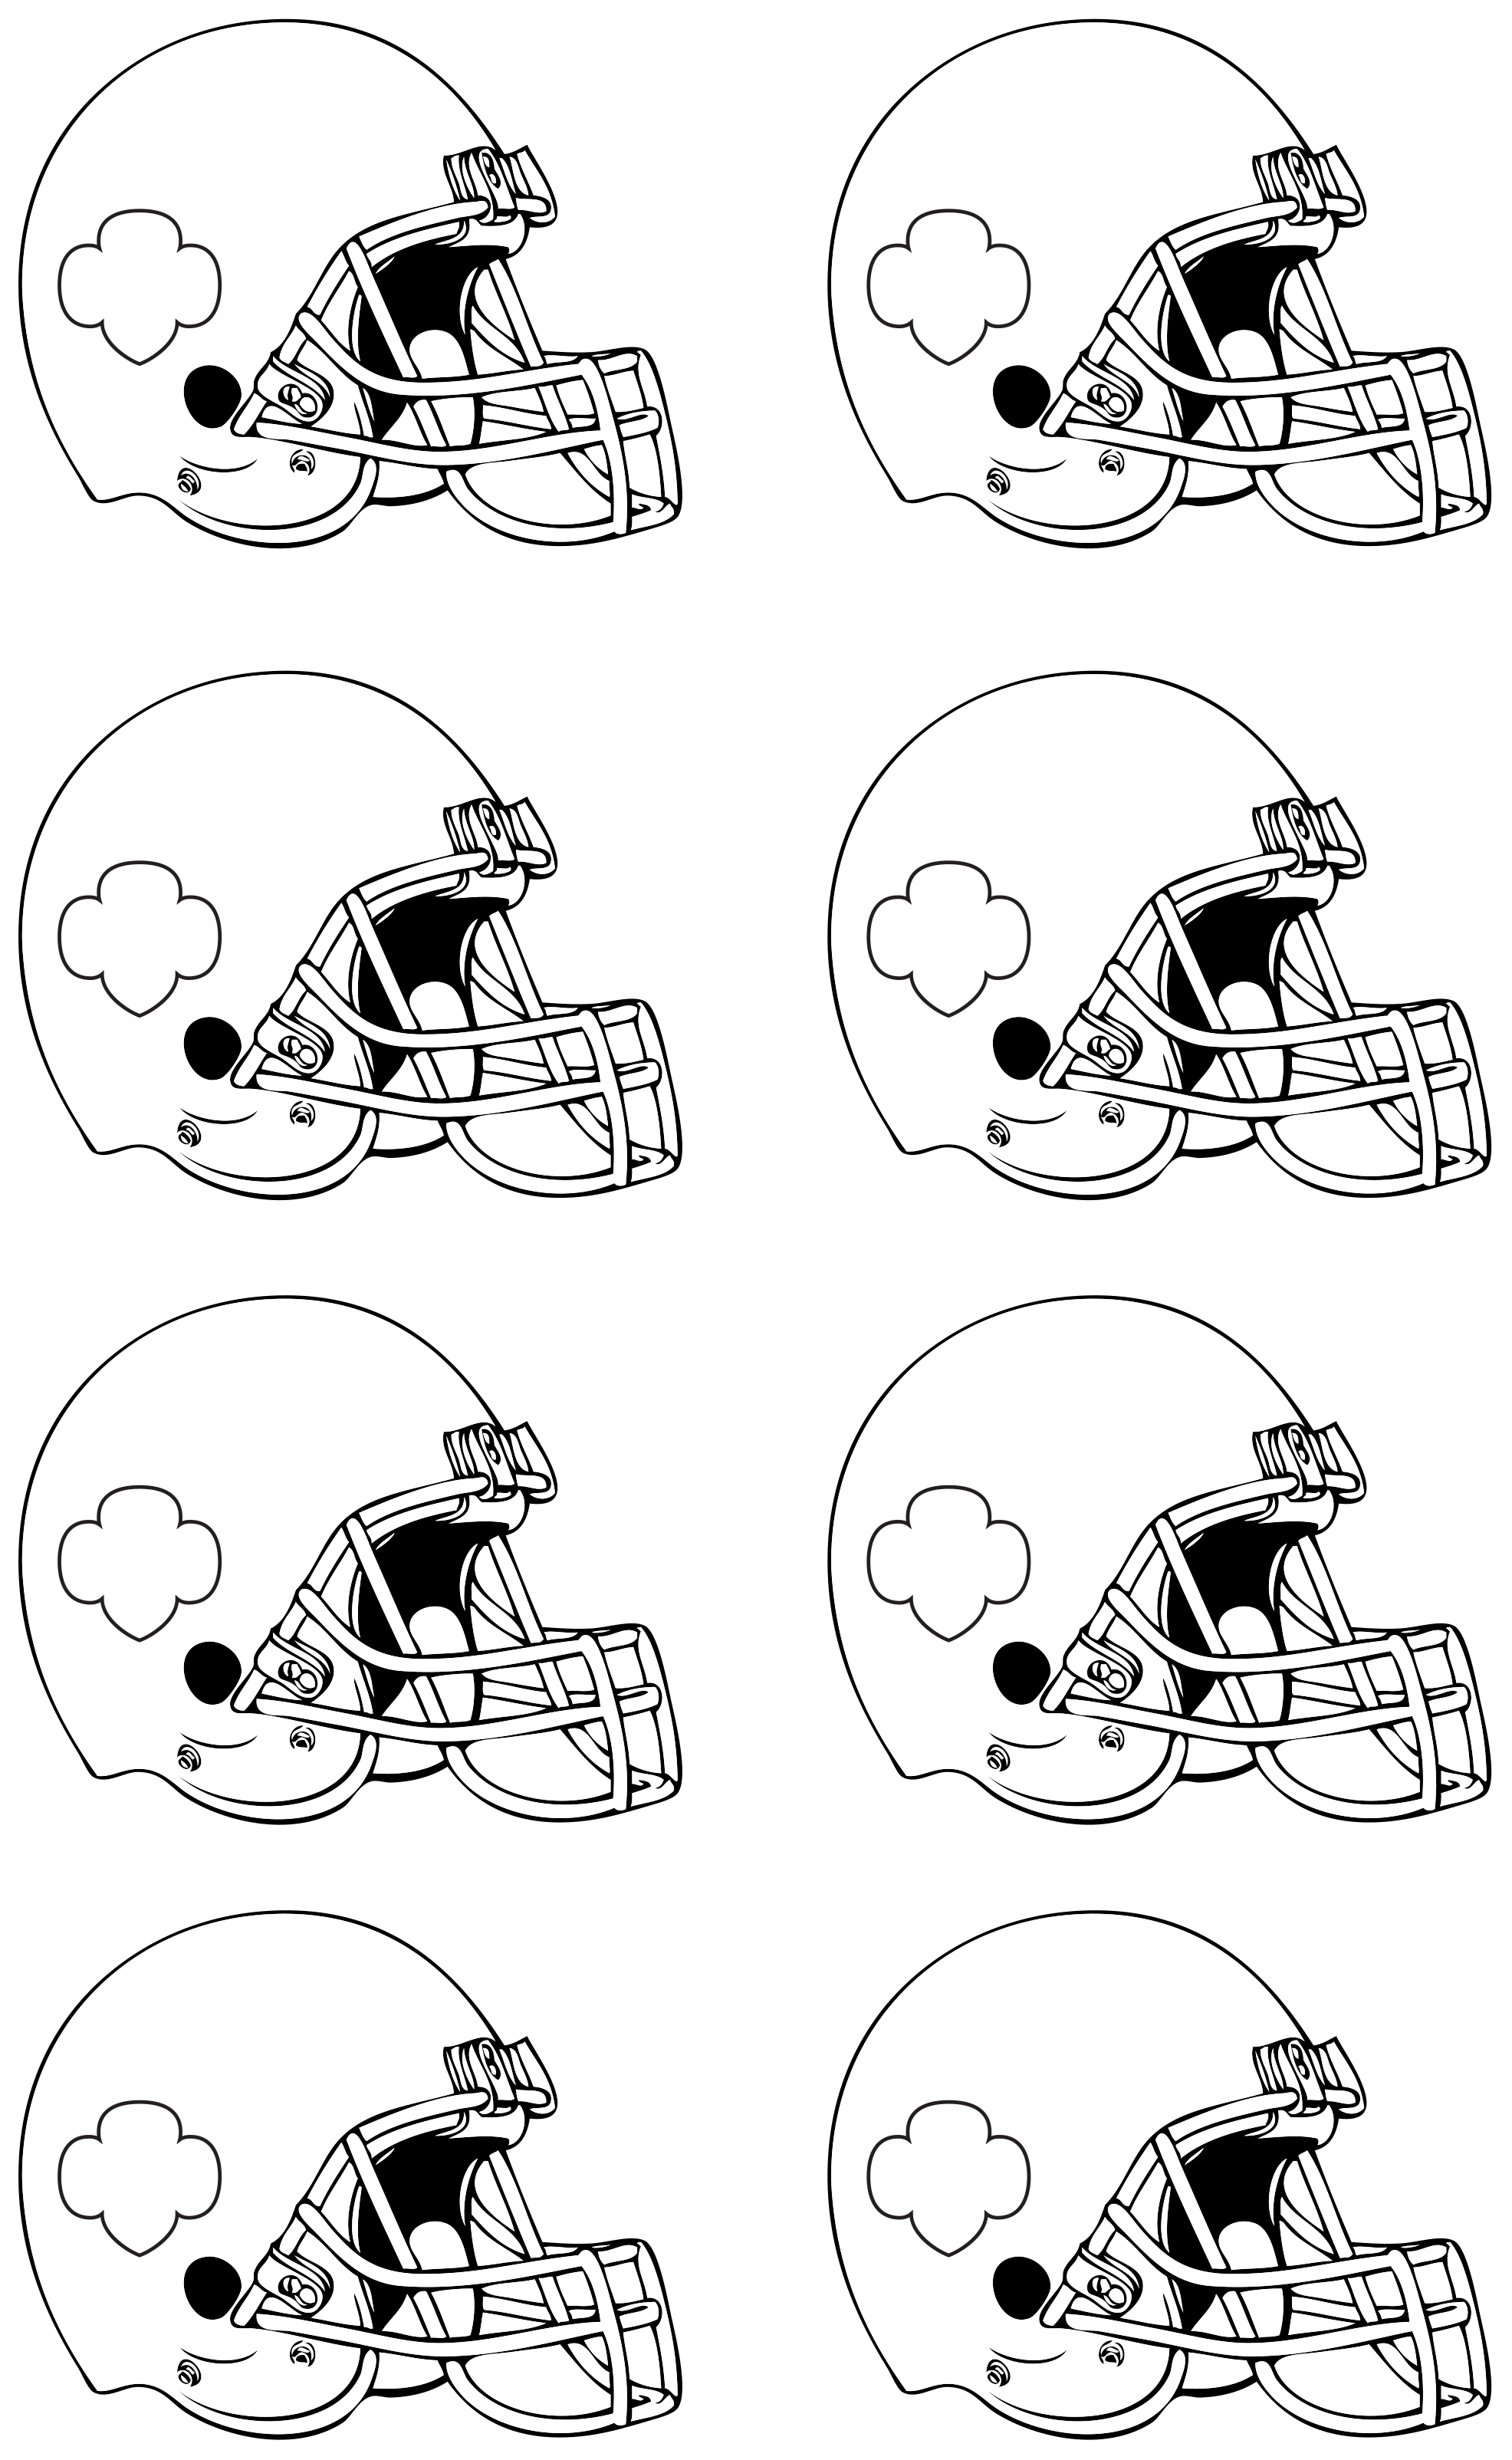 Superbowl drawing pencil. Coloring page create custom